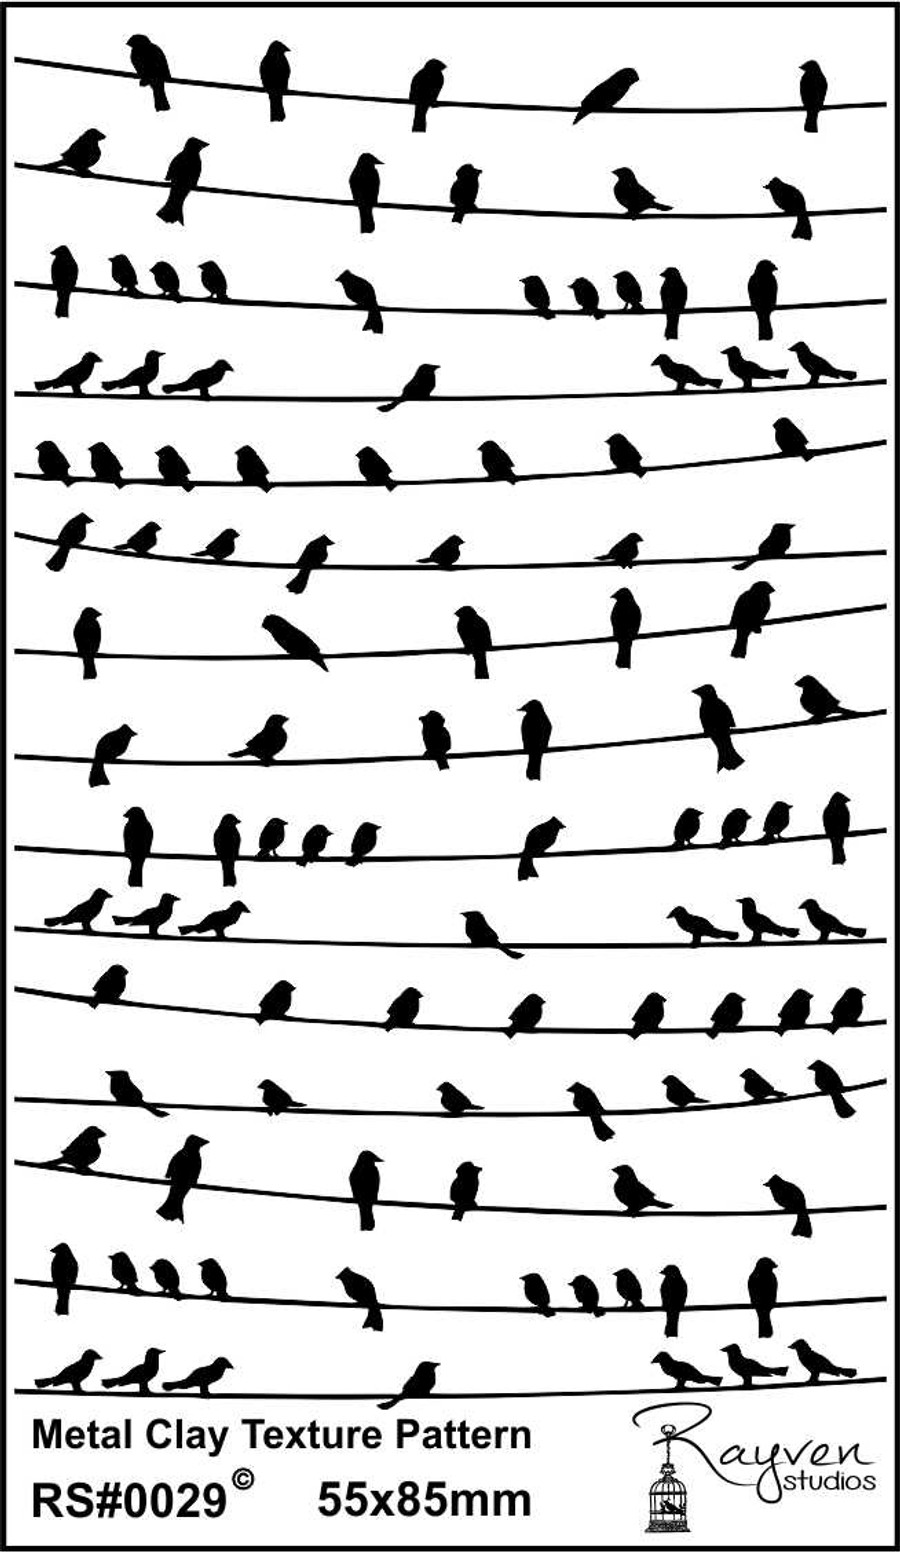 RS Laser Texture Paper - Birds on a wire - Metal Clay Ltd